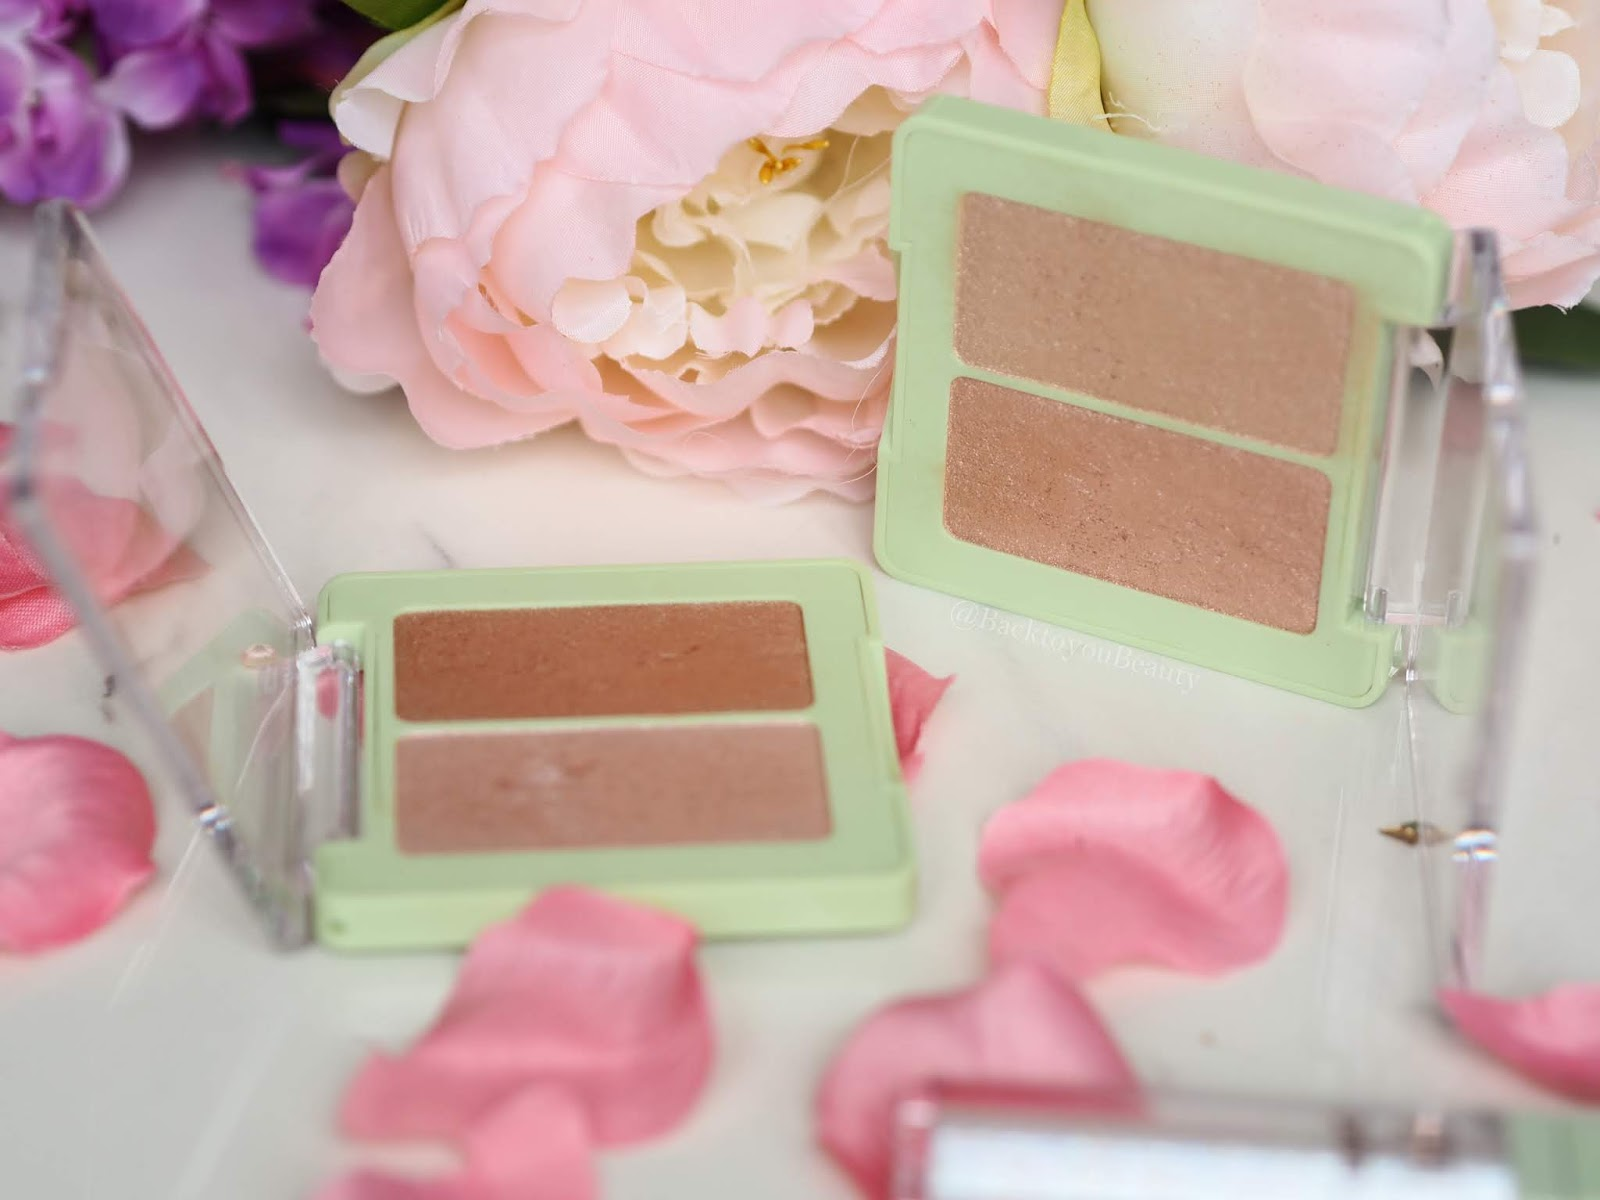 Pixi Glow-y Gossamer Duo Highlighter